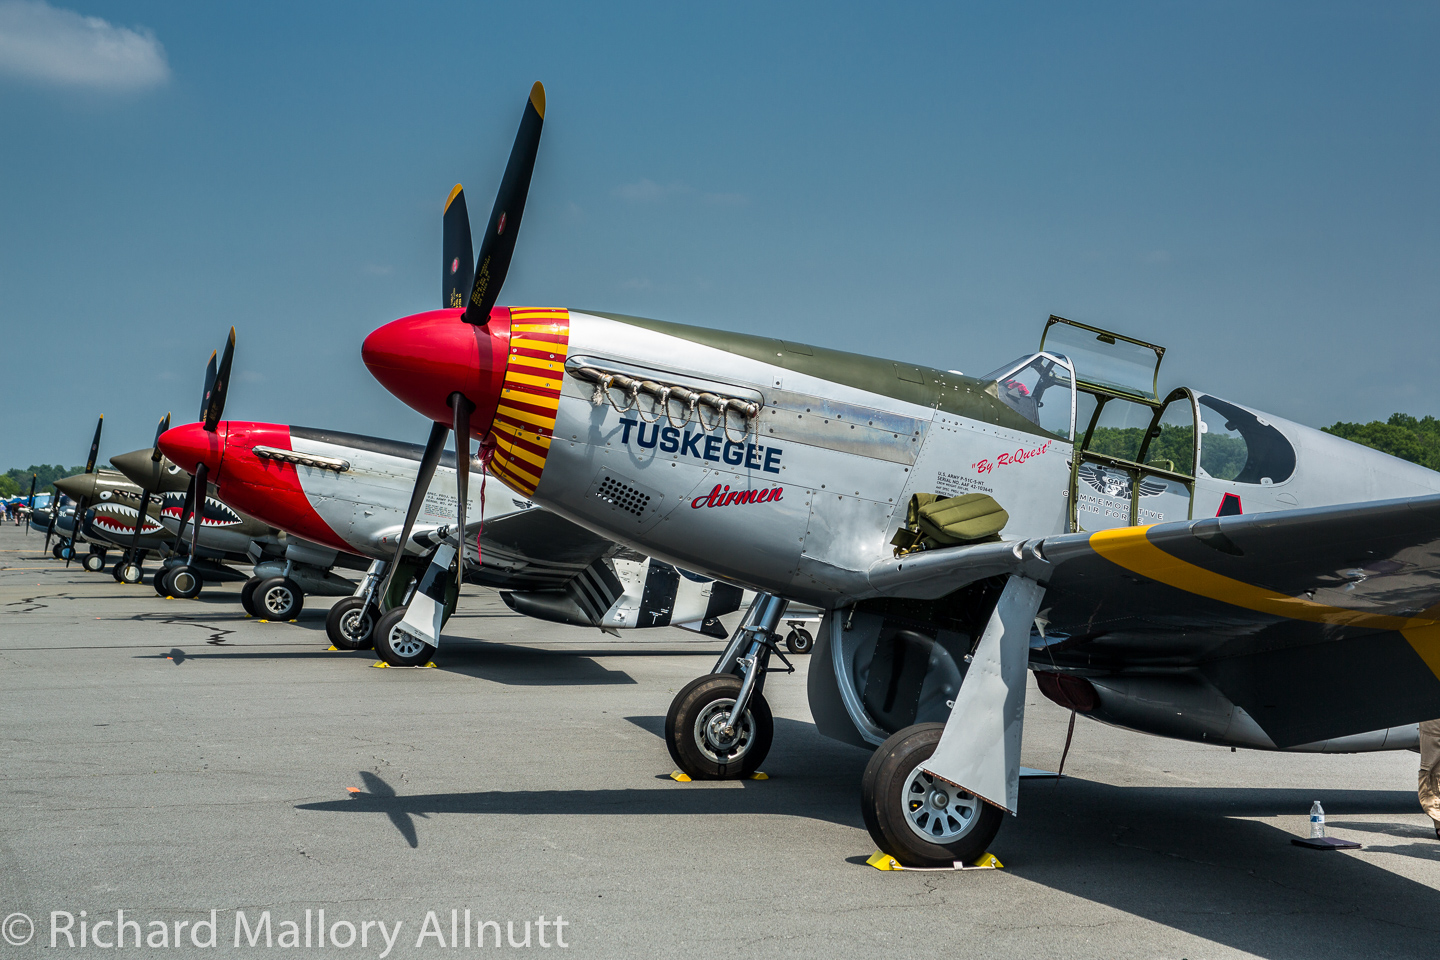 The CAF Red Tail Squadron's P-51C in the foreground at Culpeper, Virginia for the Arsenal of Democracy Flyover. (photo by Richard Mallory Allnutt)